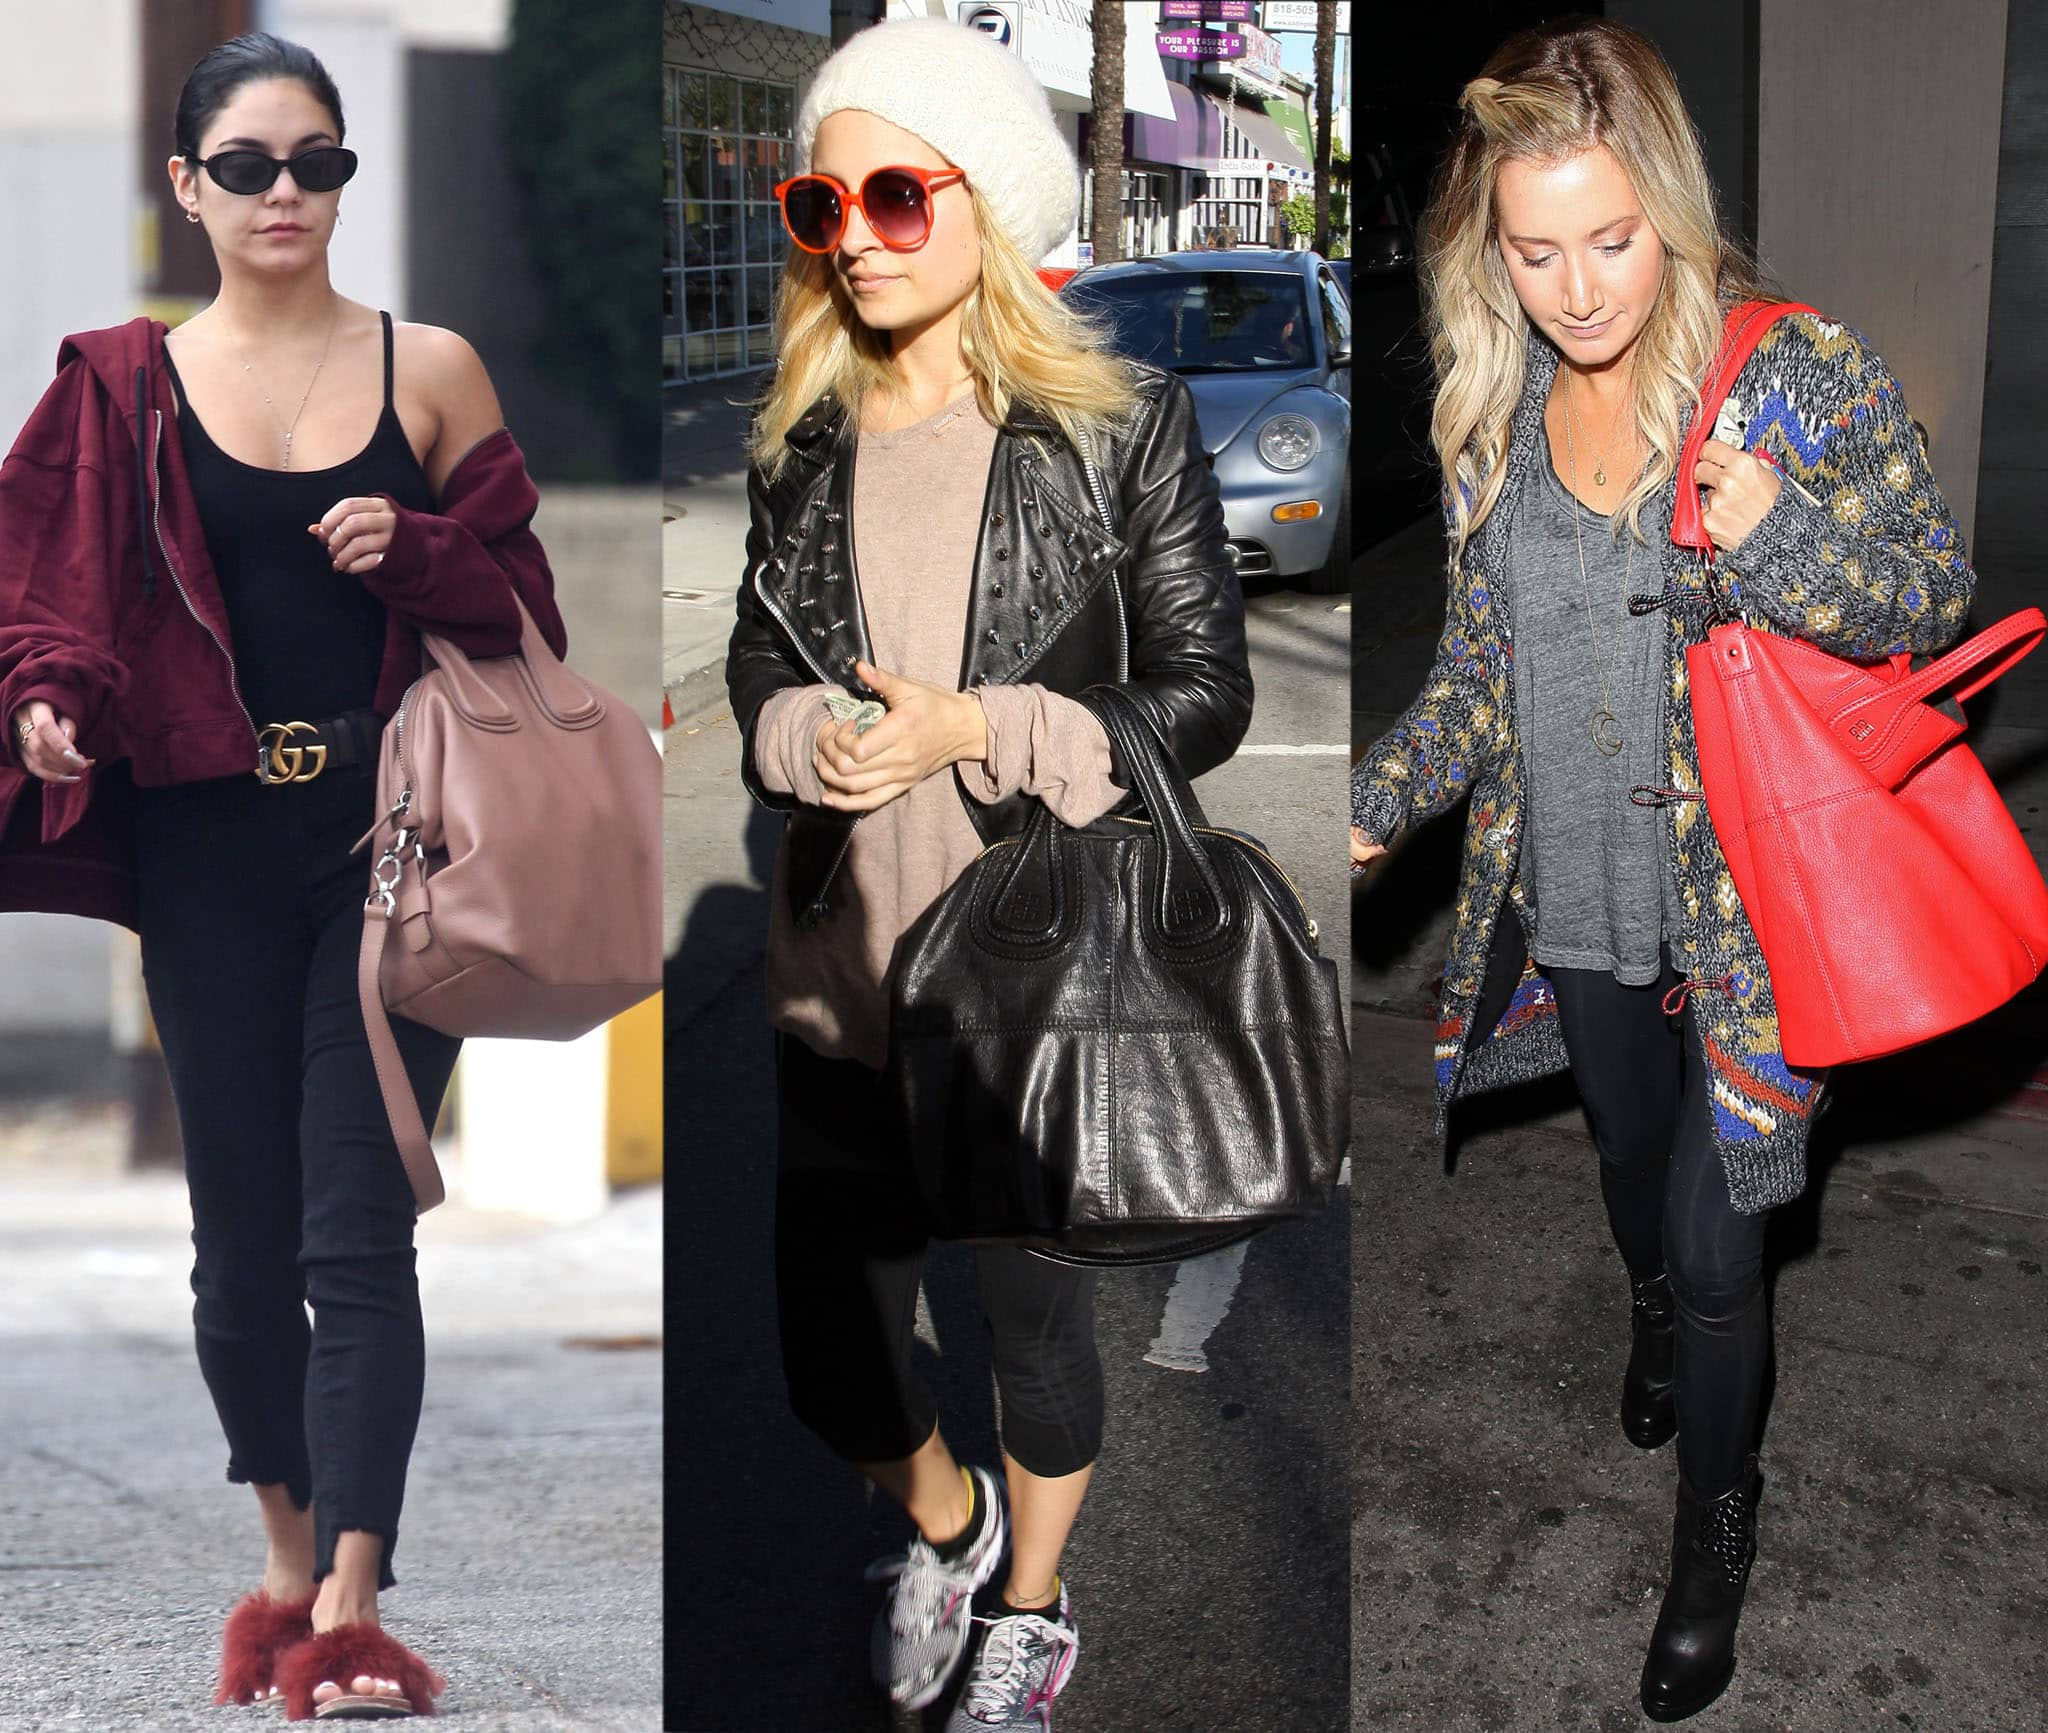 Vanessa Hudgens, Nicole Richie, and Ashley Tisdale toting Givenchy's Nightingale bag